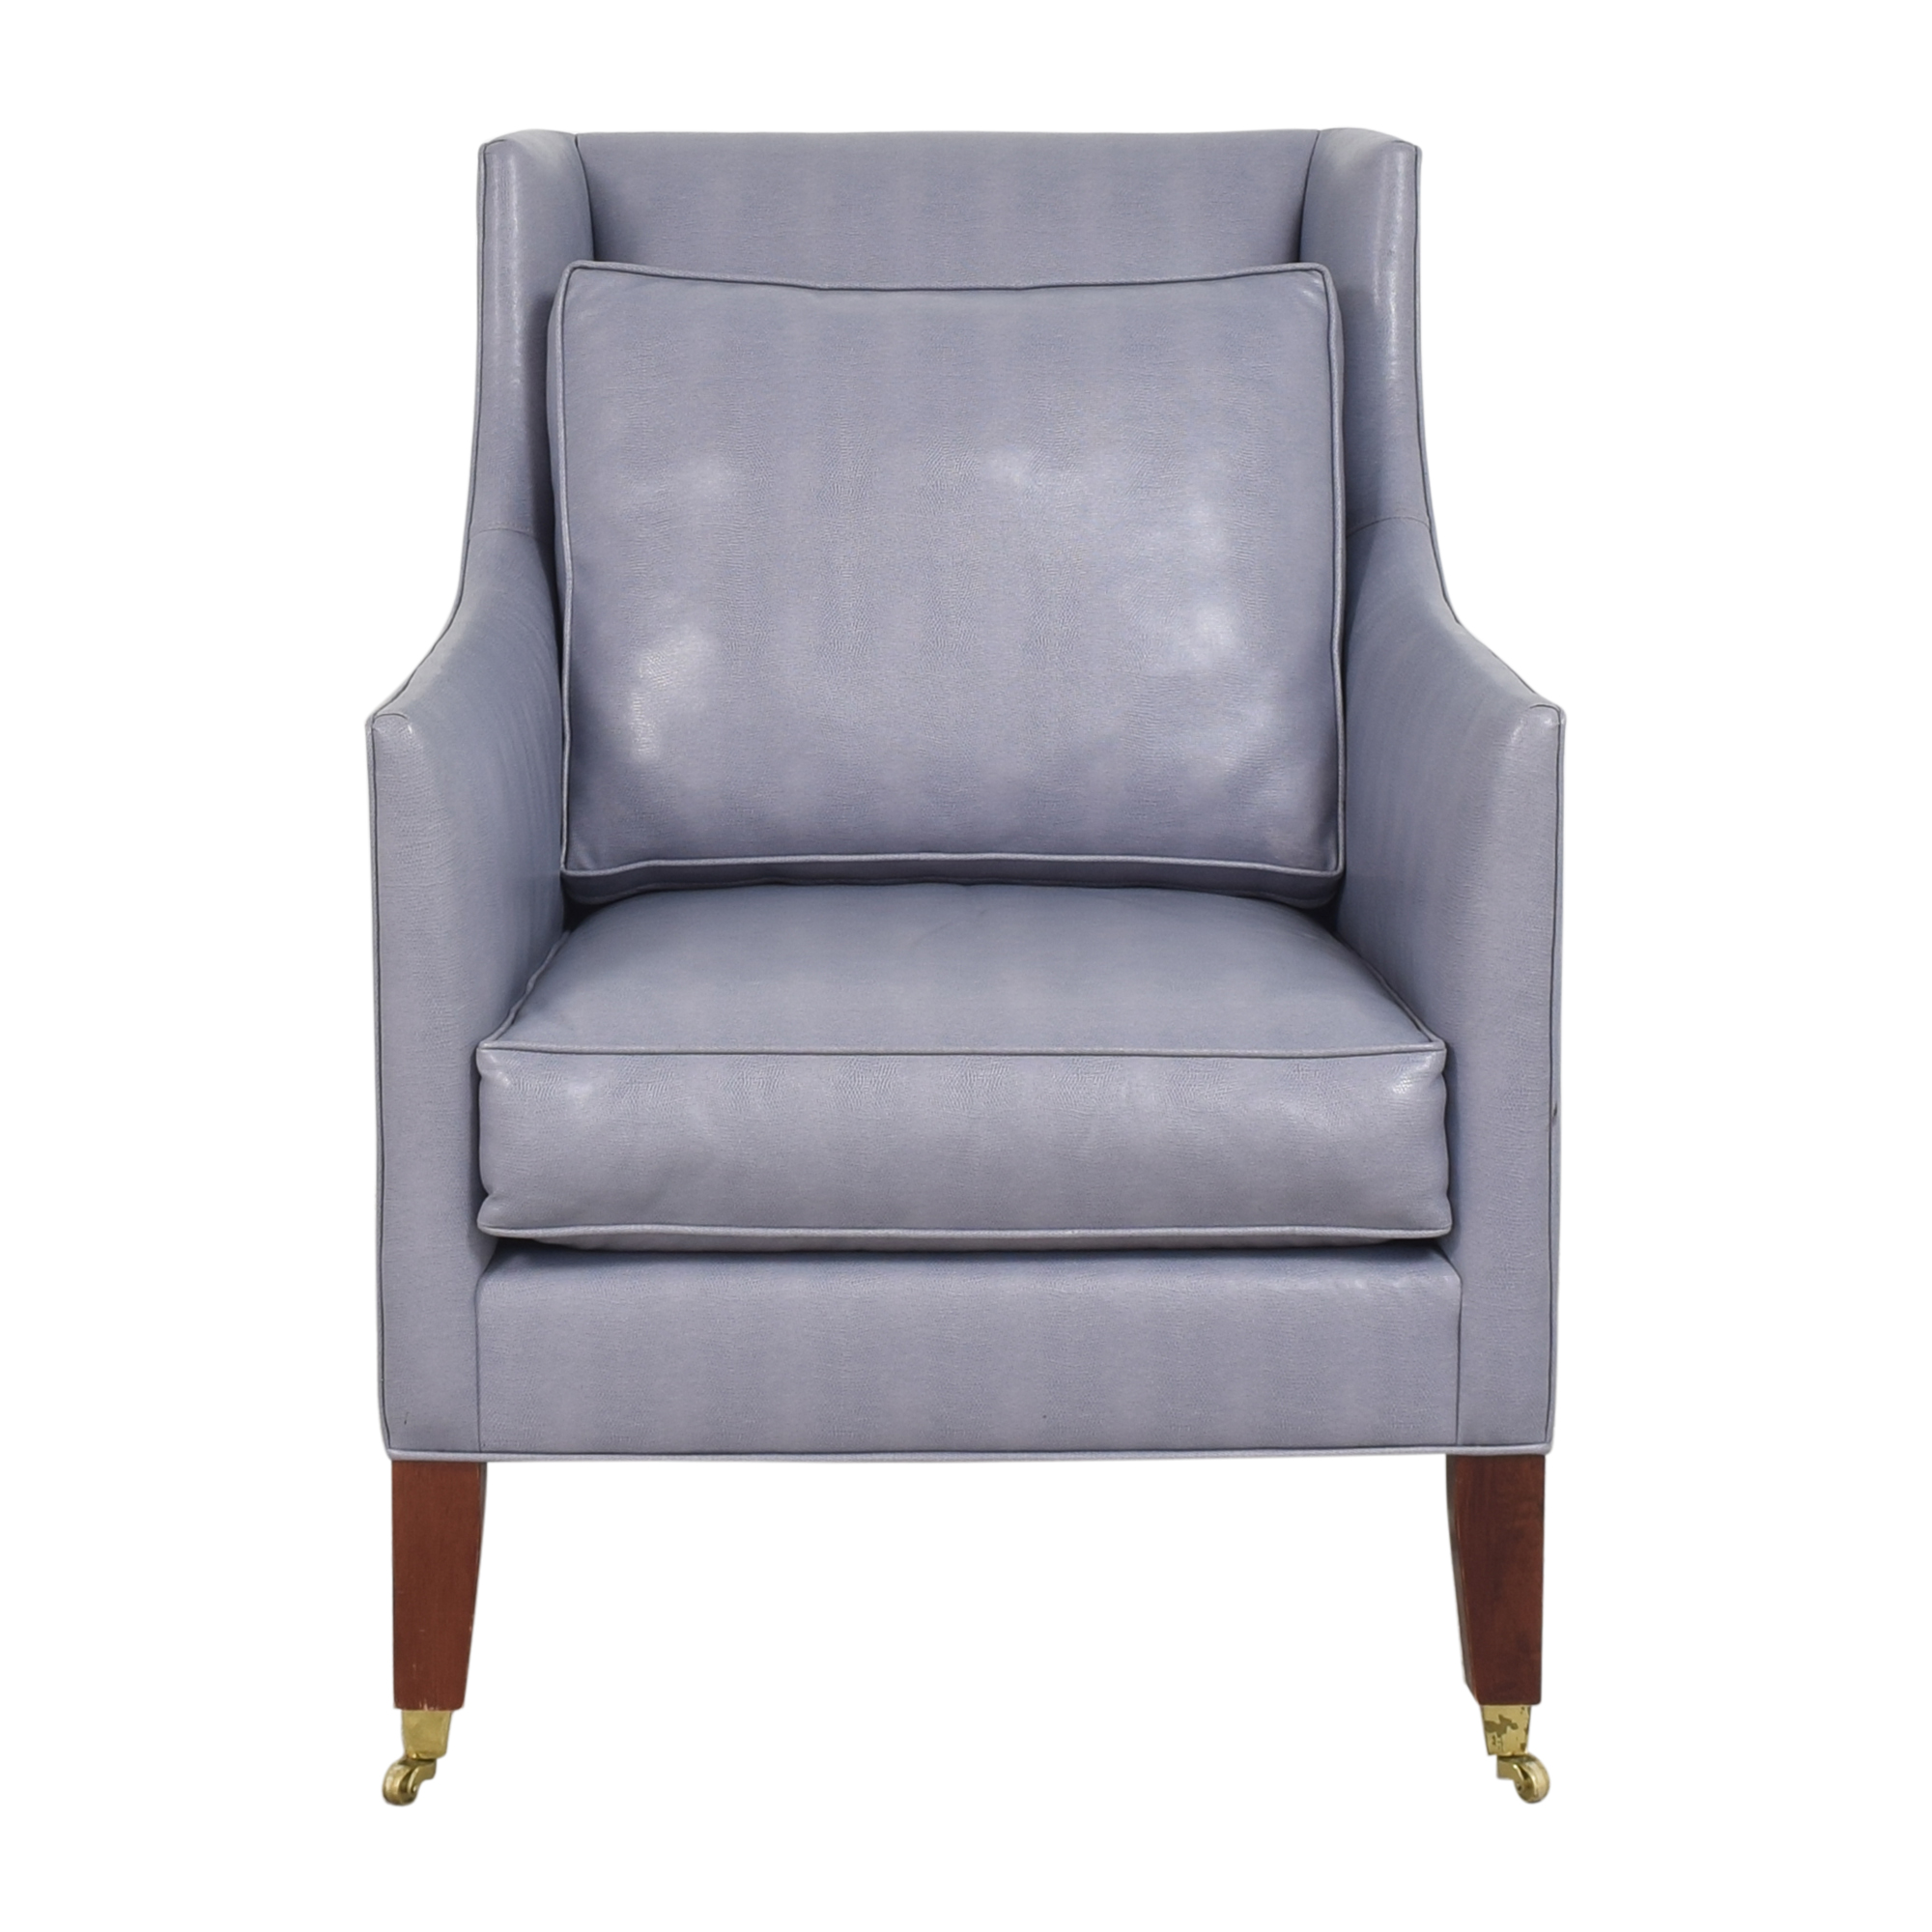 shop Baker Furniture Milling Road Accent Chair Baker Furniture Accent Chairs